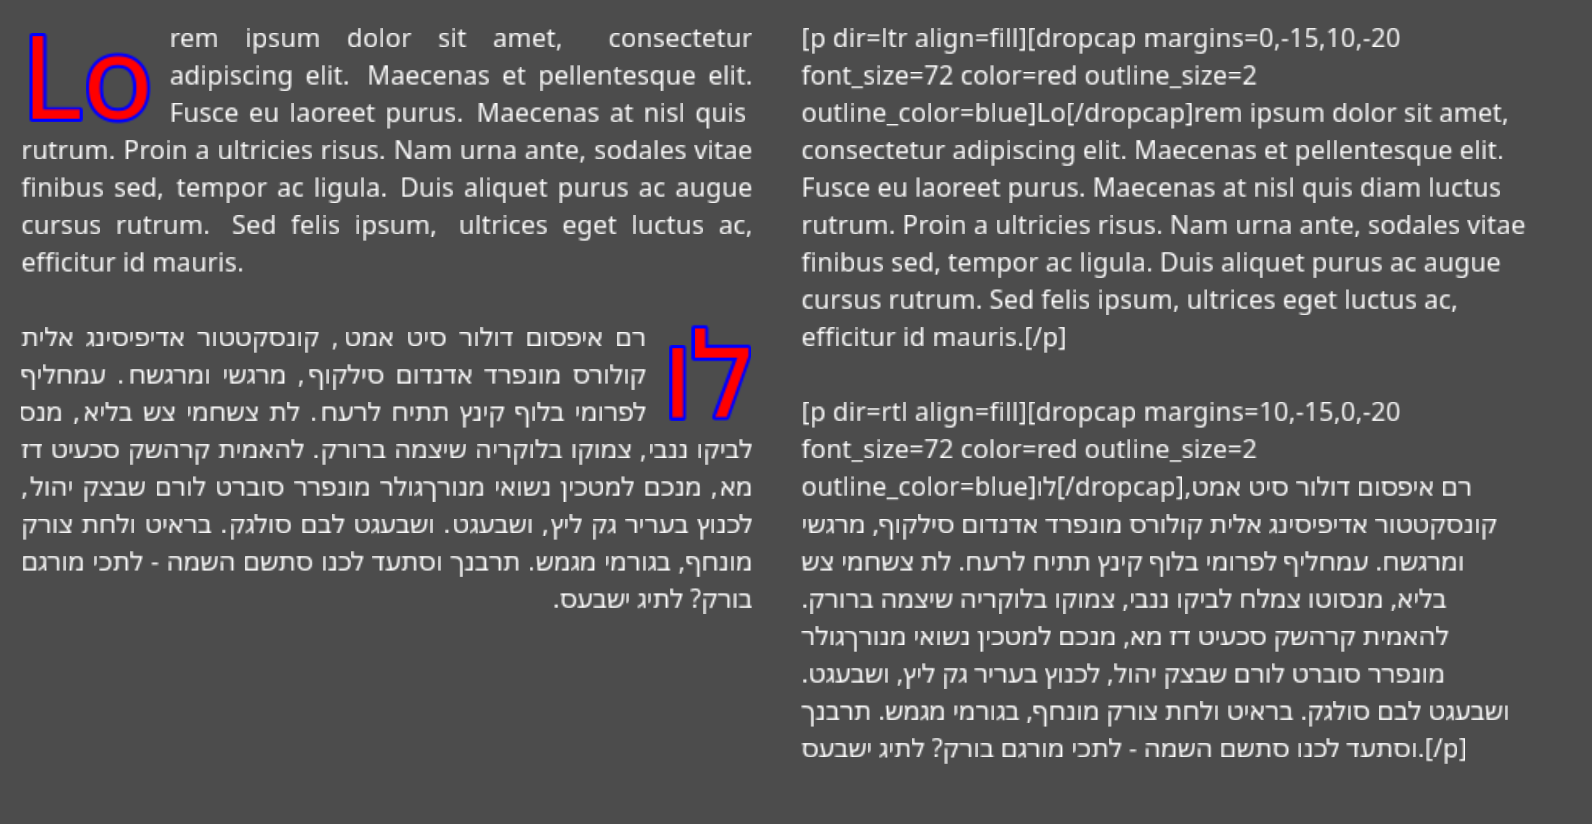 Example of Latin and Hebrew text using dropcaps